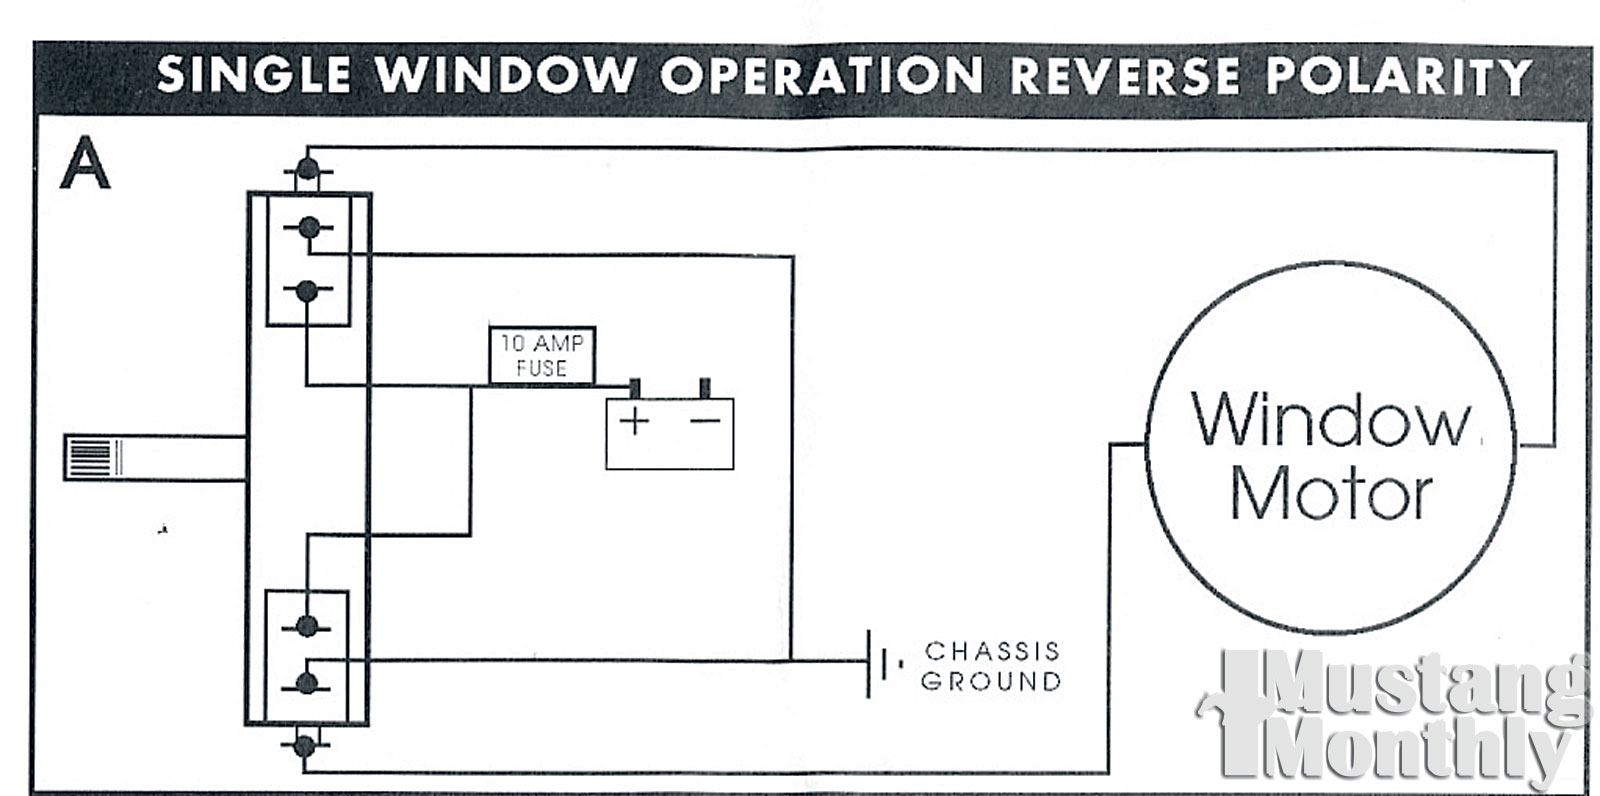 hight resolution of mump 1107 20 electric life power windows single window wiring diagram